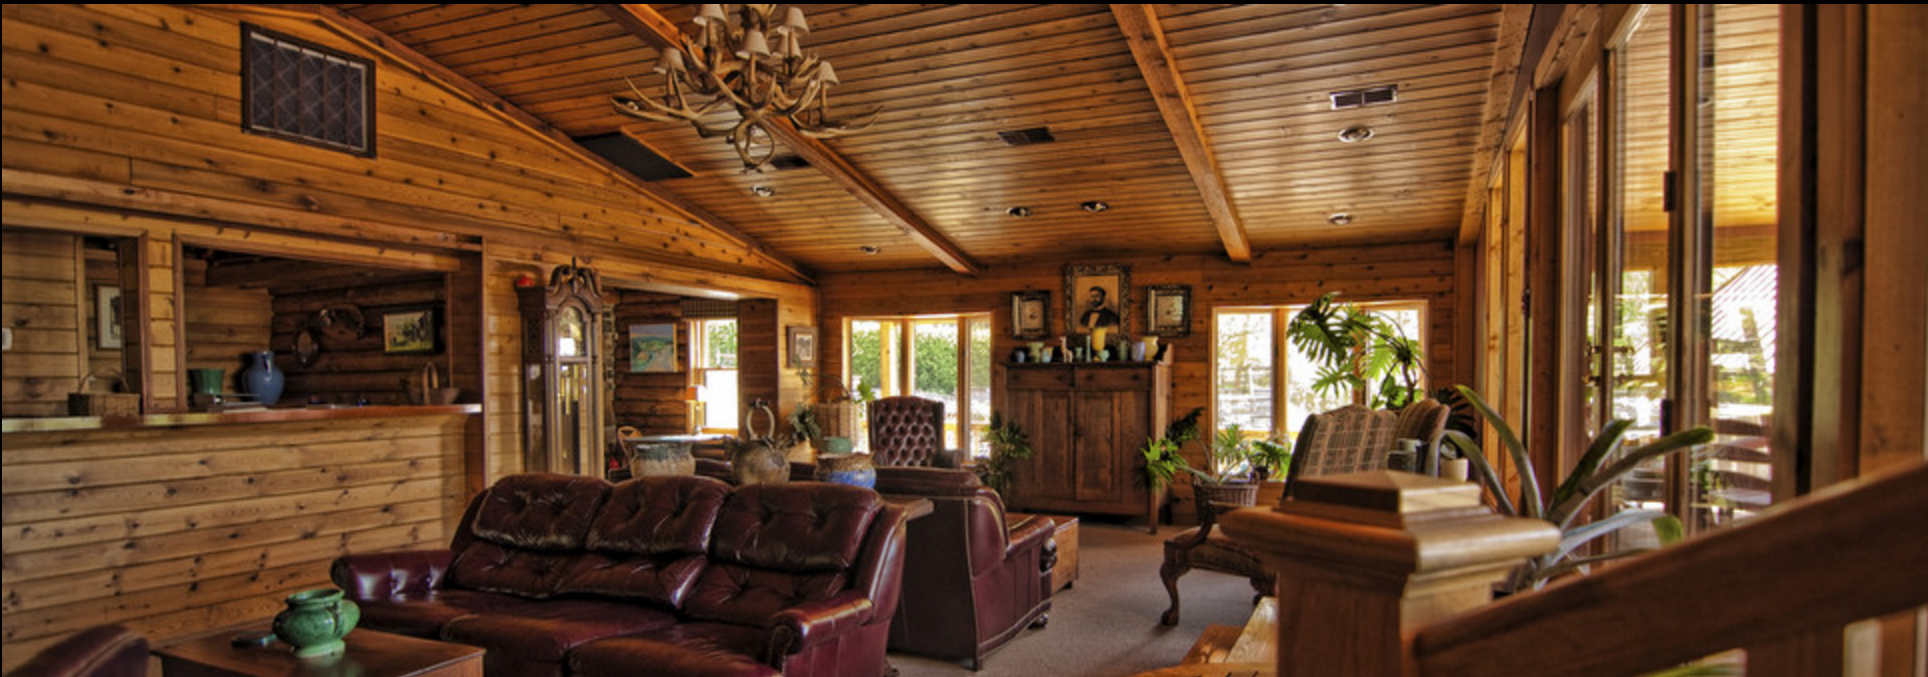 Inside the Lodge